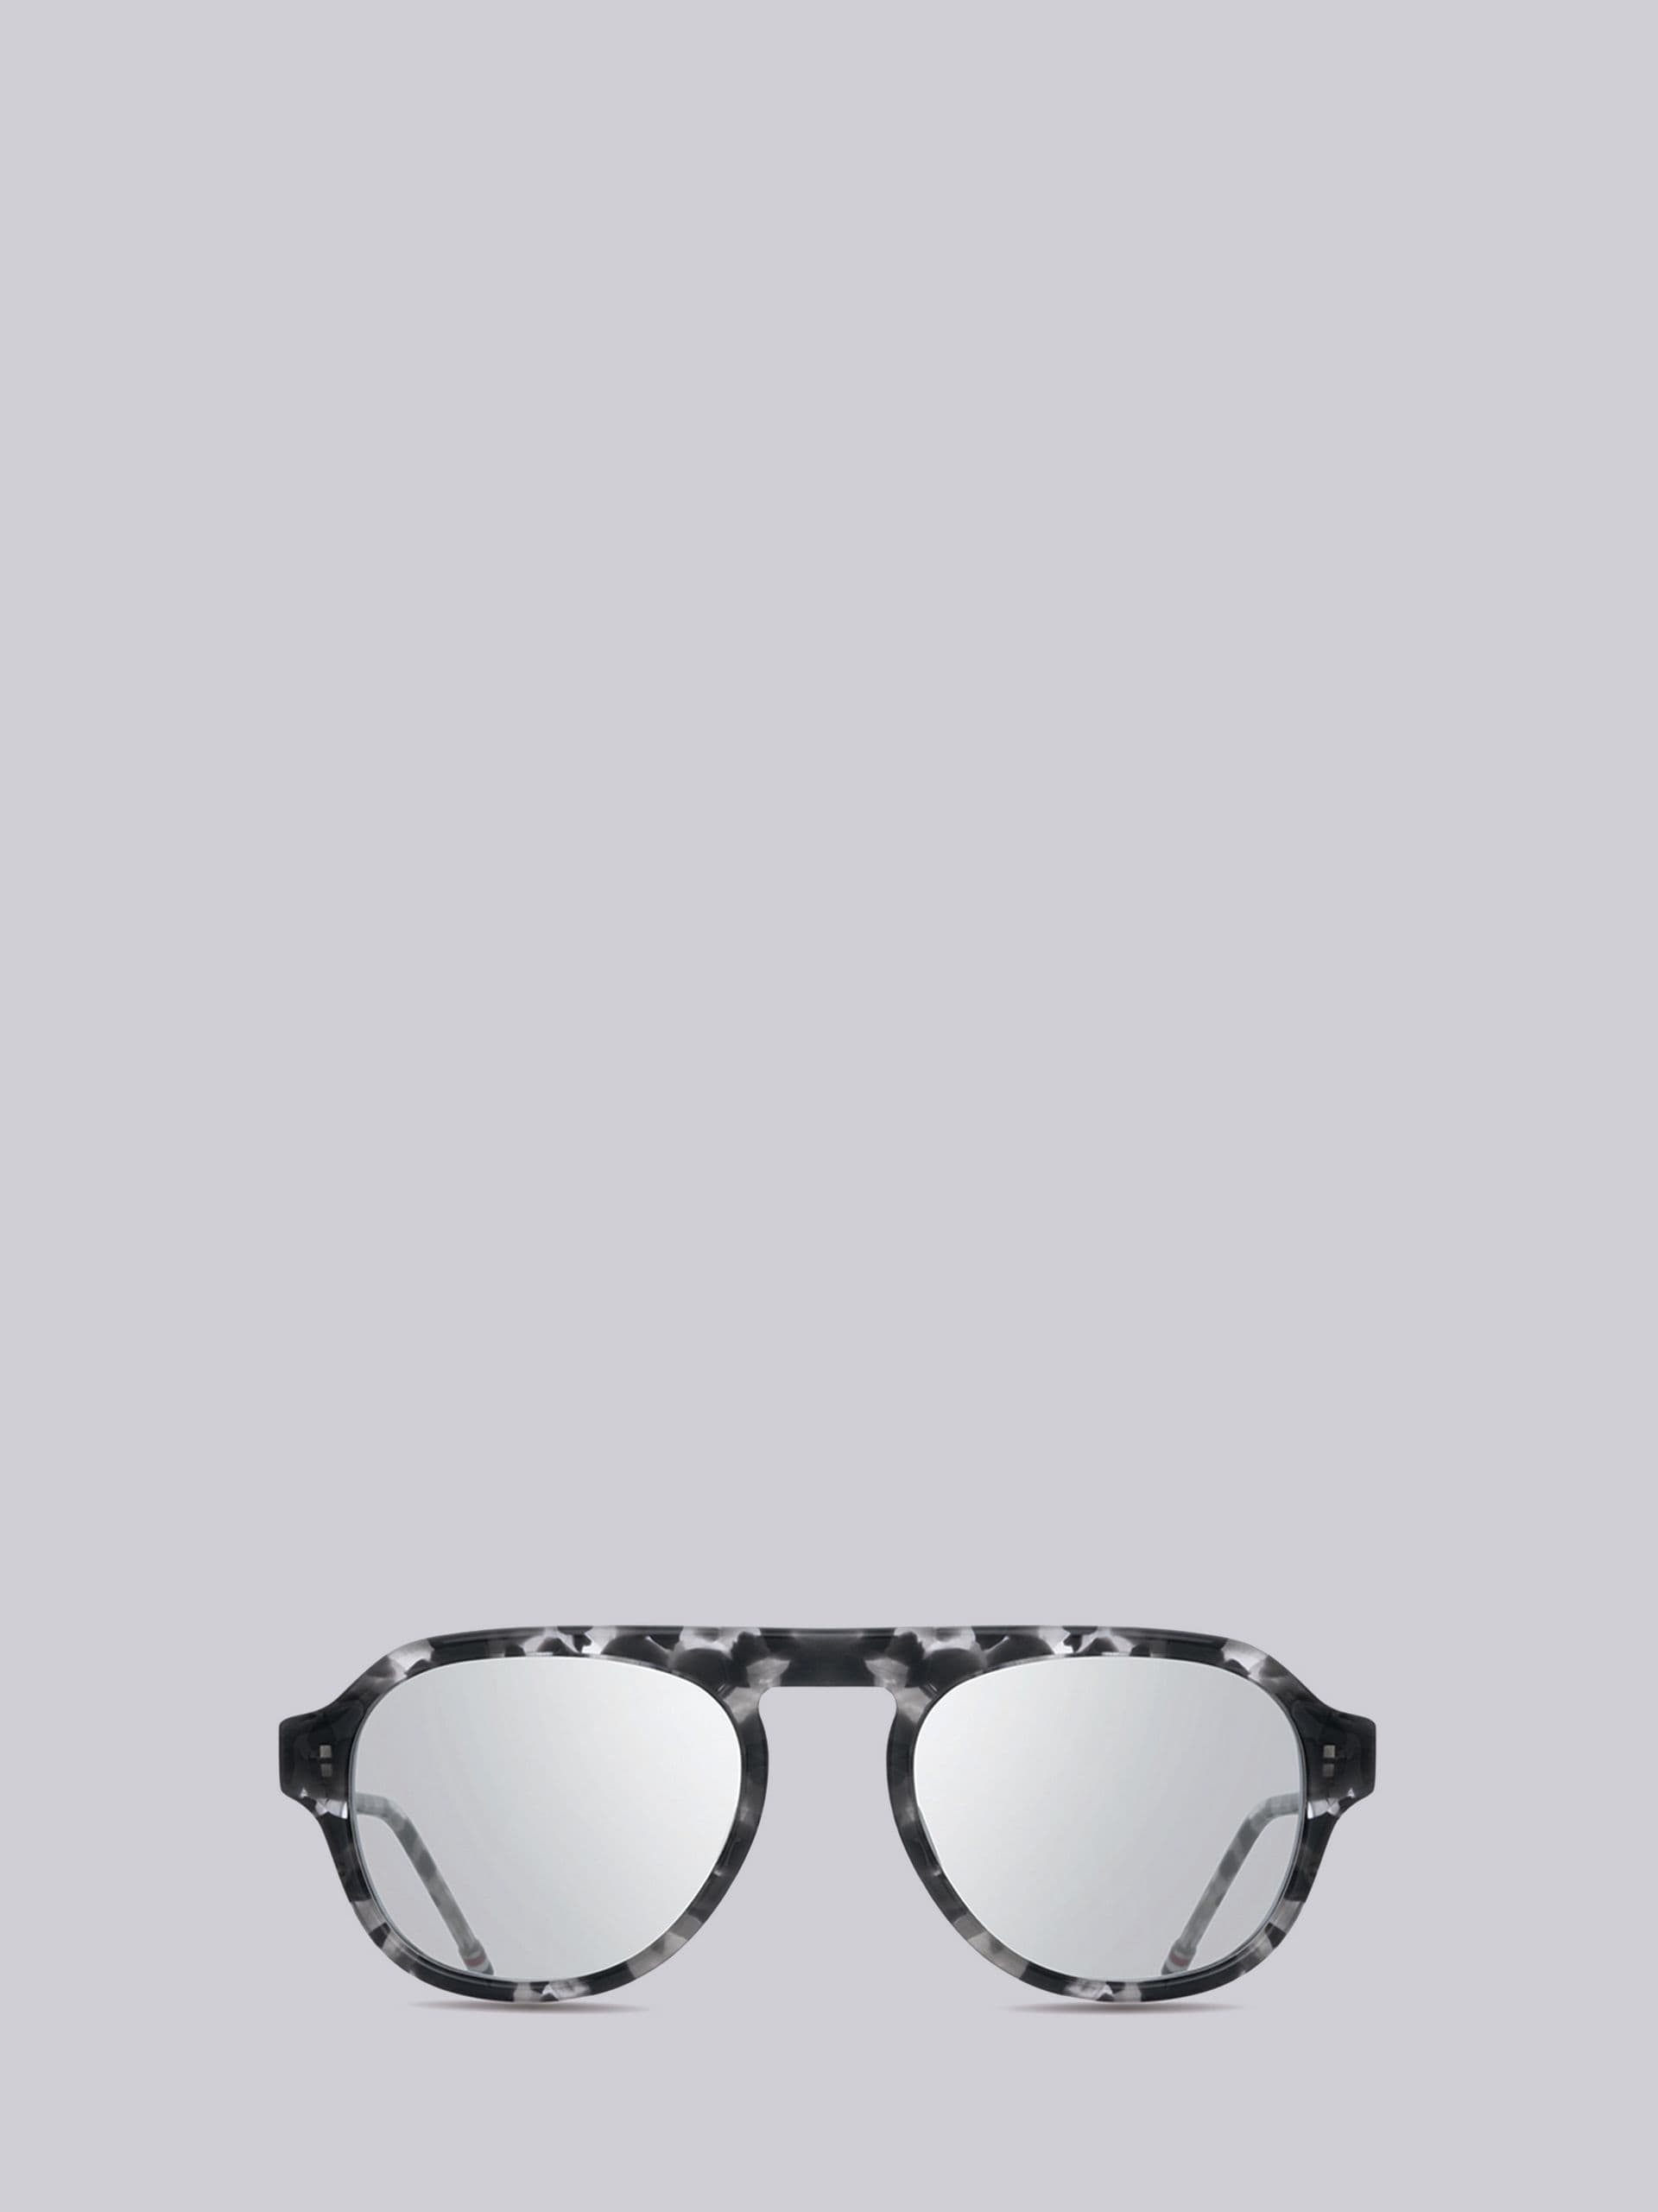 Silver & White Gold Sunglasses.jpg